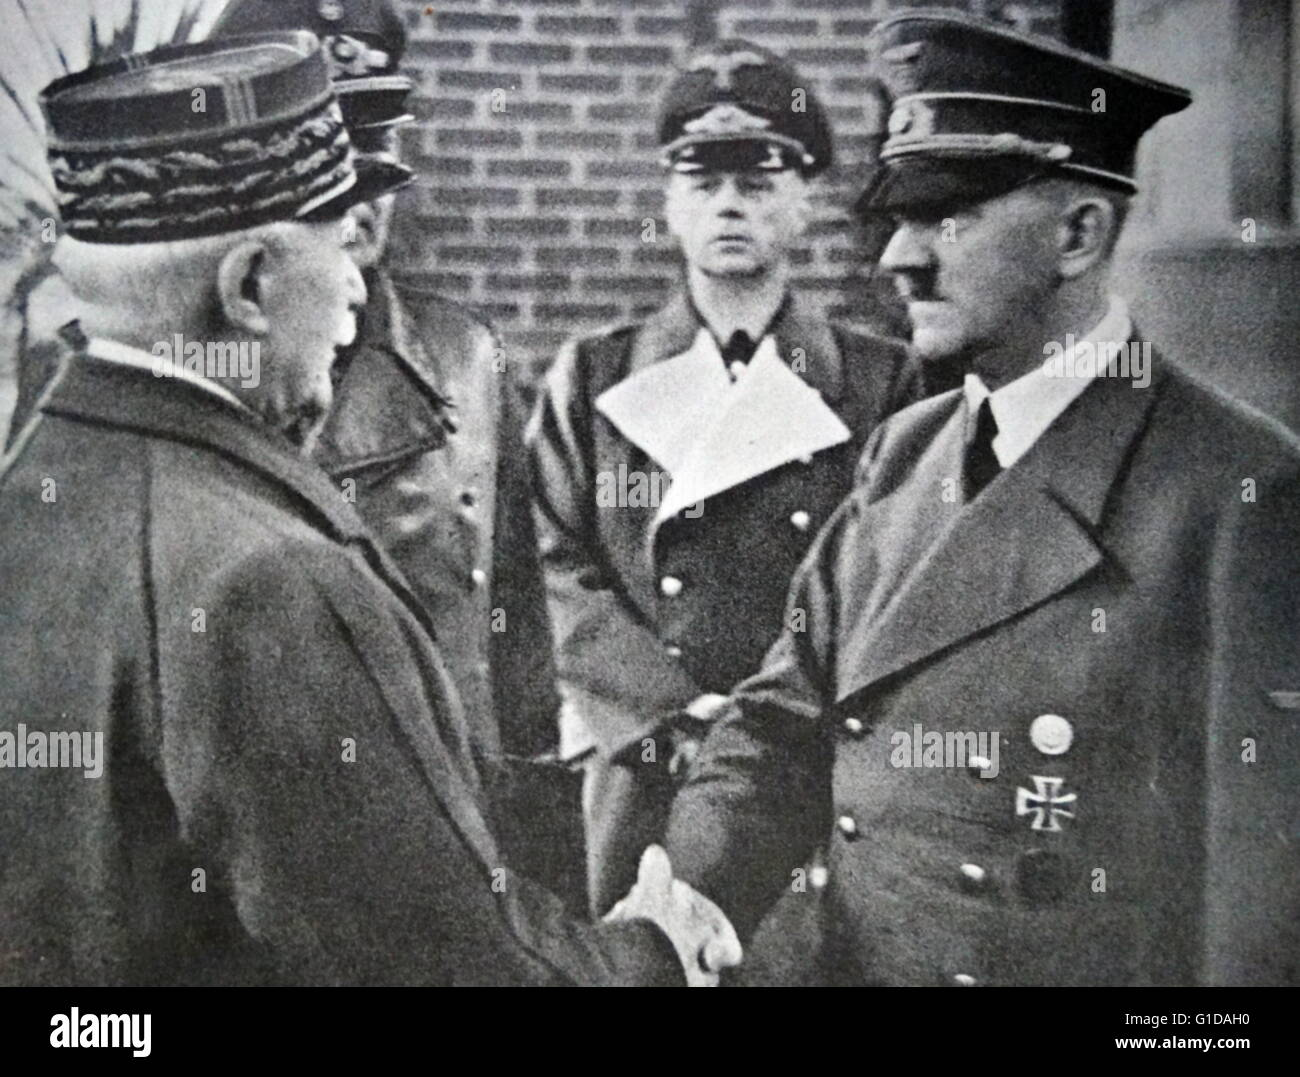 World war two: Adolf Hitler meets with Philippe Petain leader of Vichy France in October 1940 - Stock Image